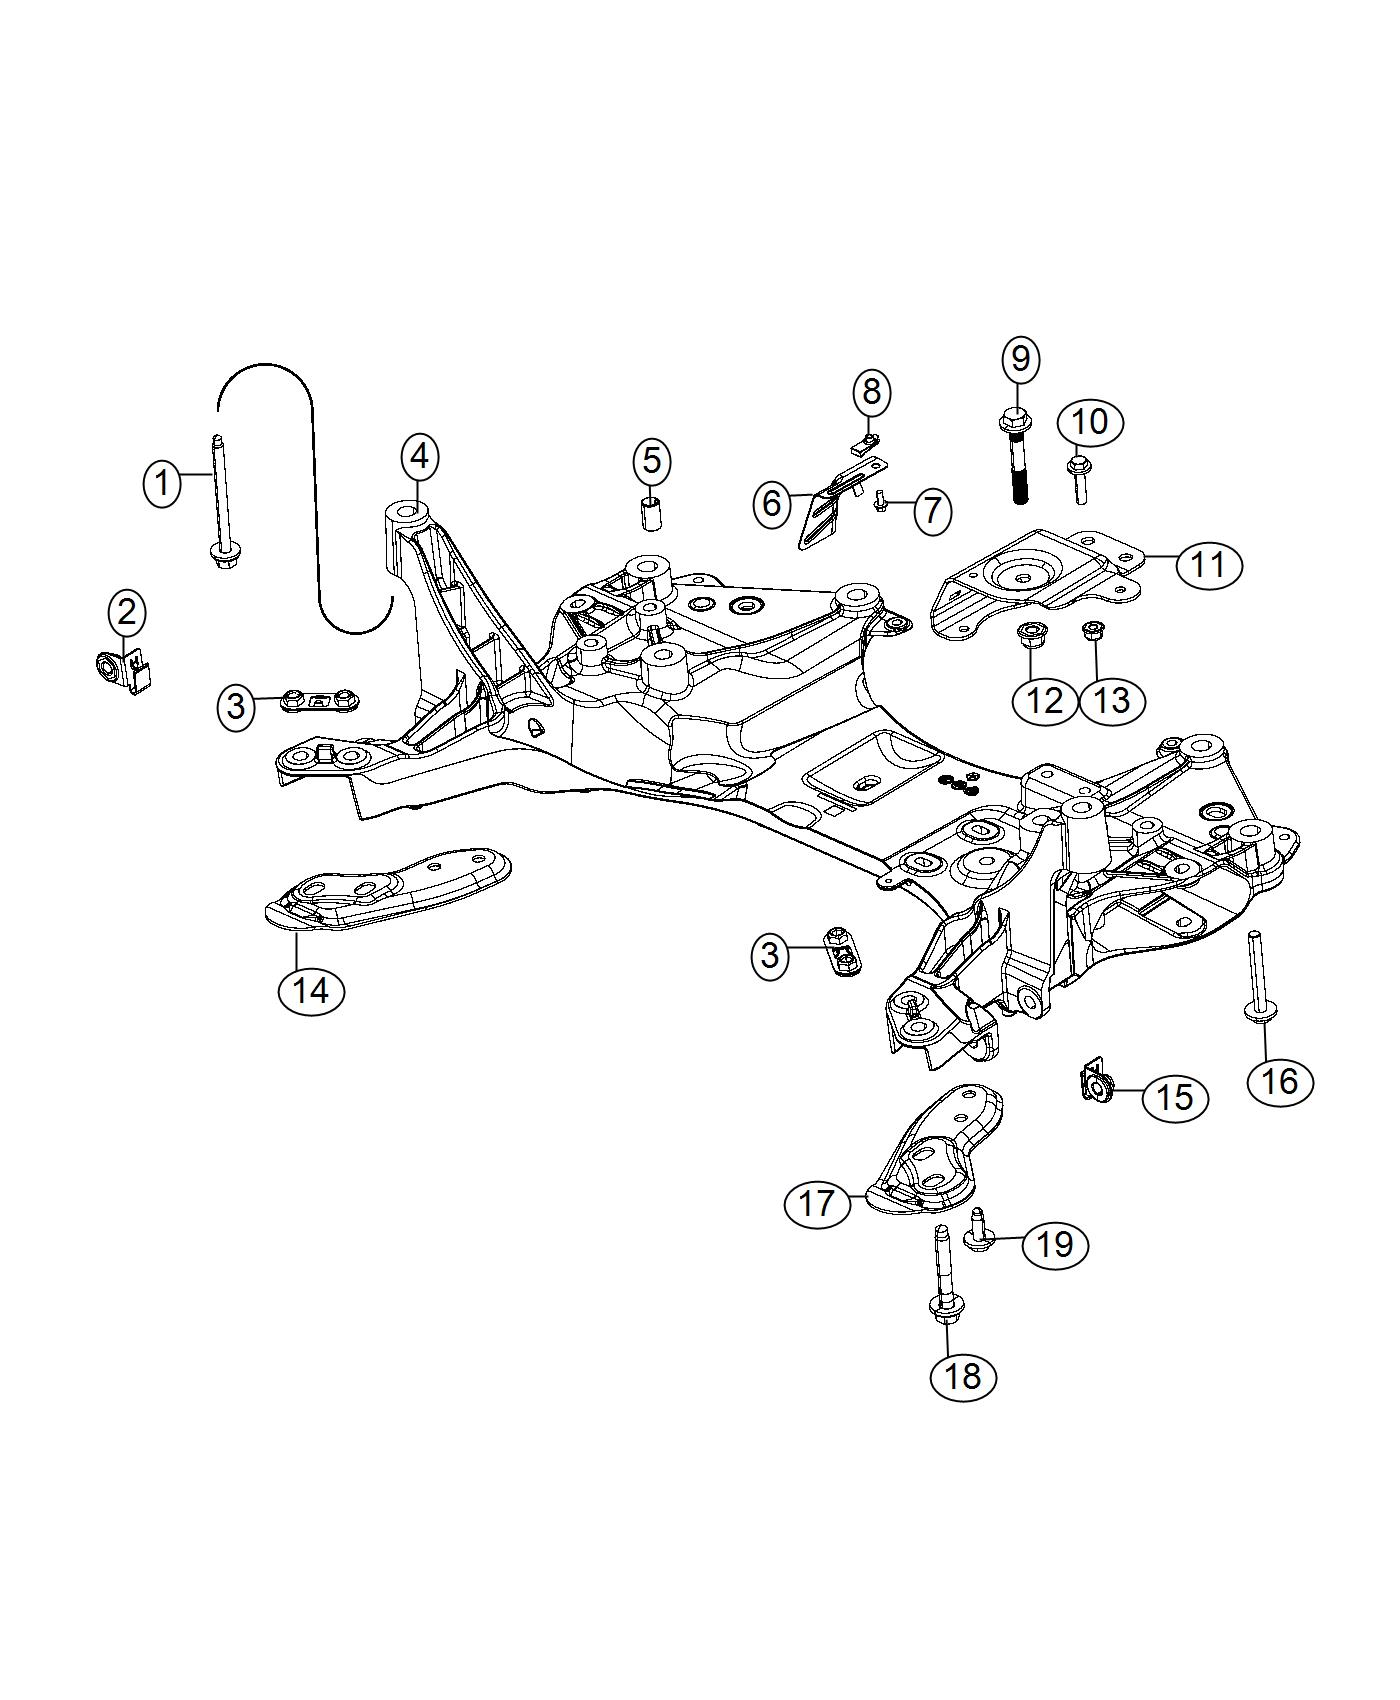 P 0996b43f8037ef0a additionally 2 also Bmw X5 Parts Diagram besides Vehicle Control Arm further P 0900c1528008d4bc. on 2005 bmw x5 rear suspension parts